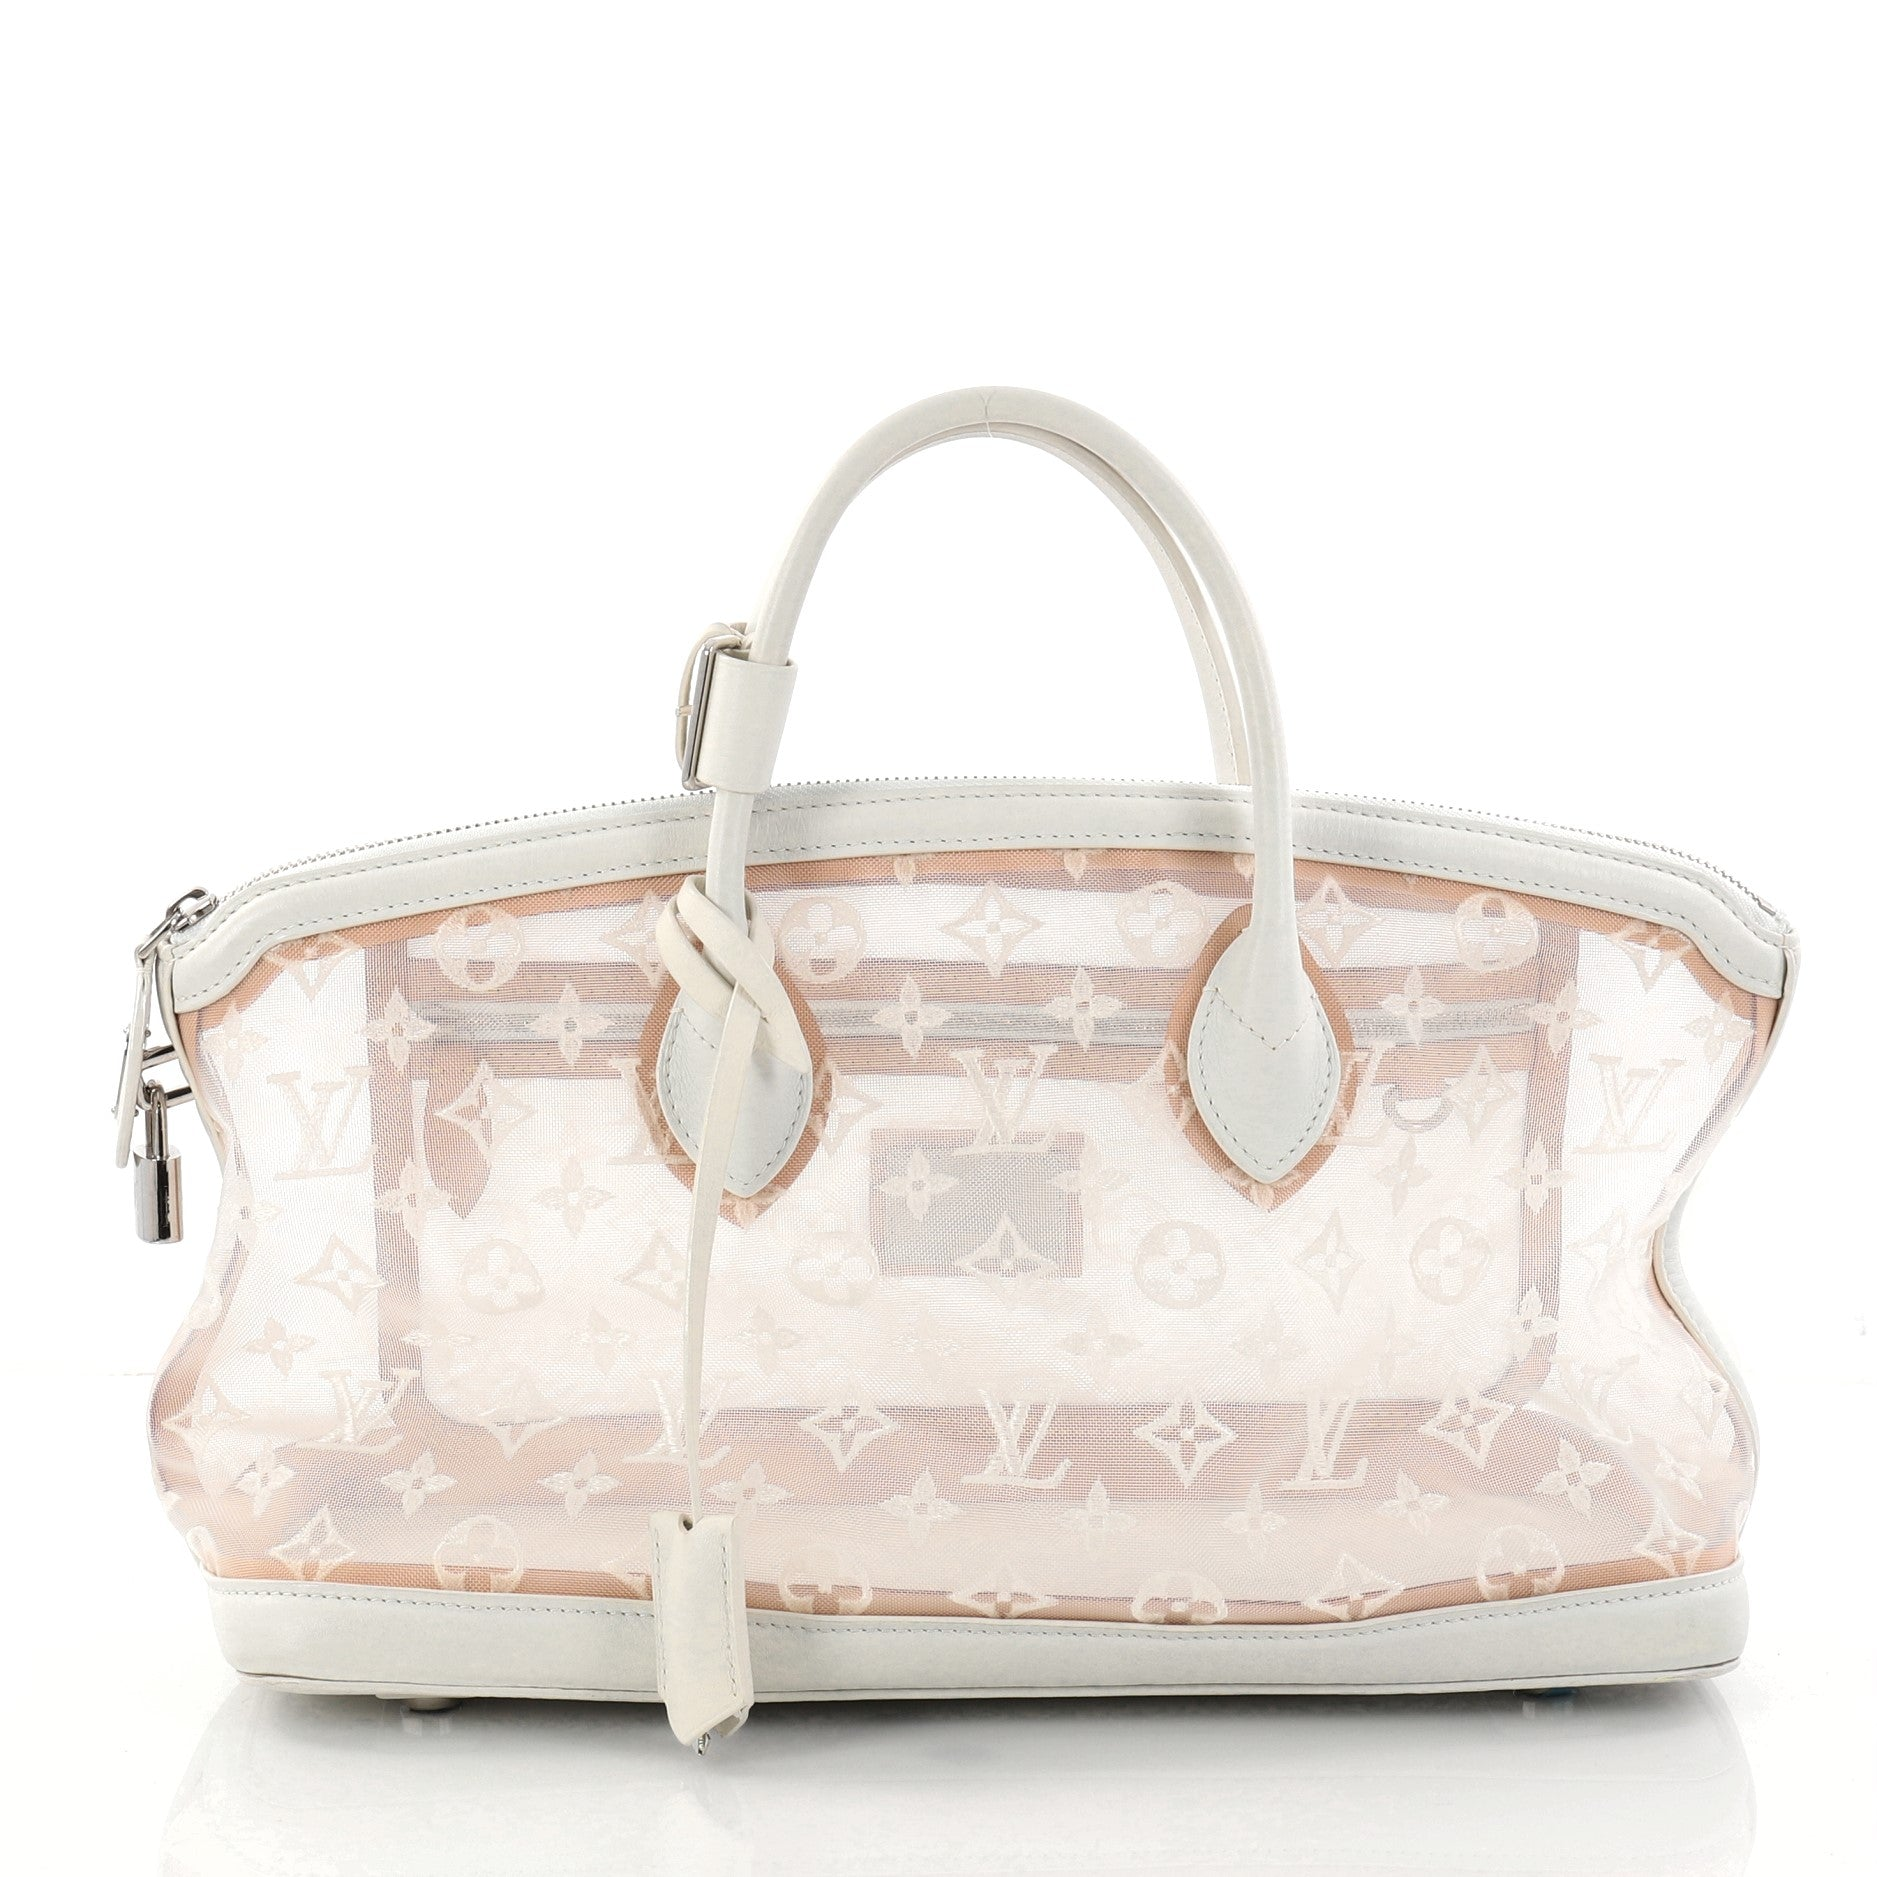 Transparence Lockit Handbag Mesh and Leather East West